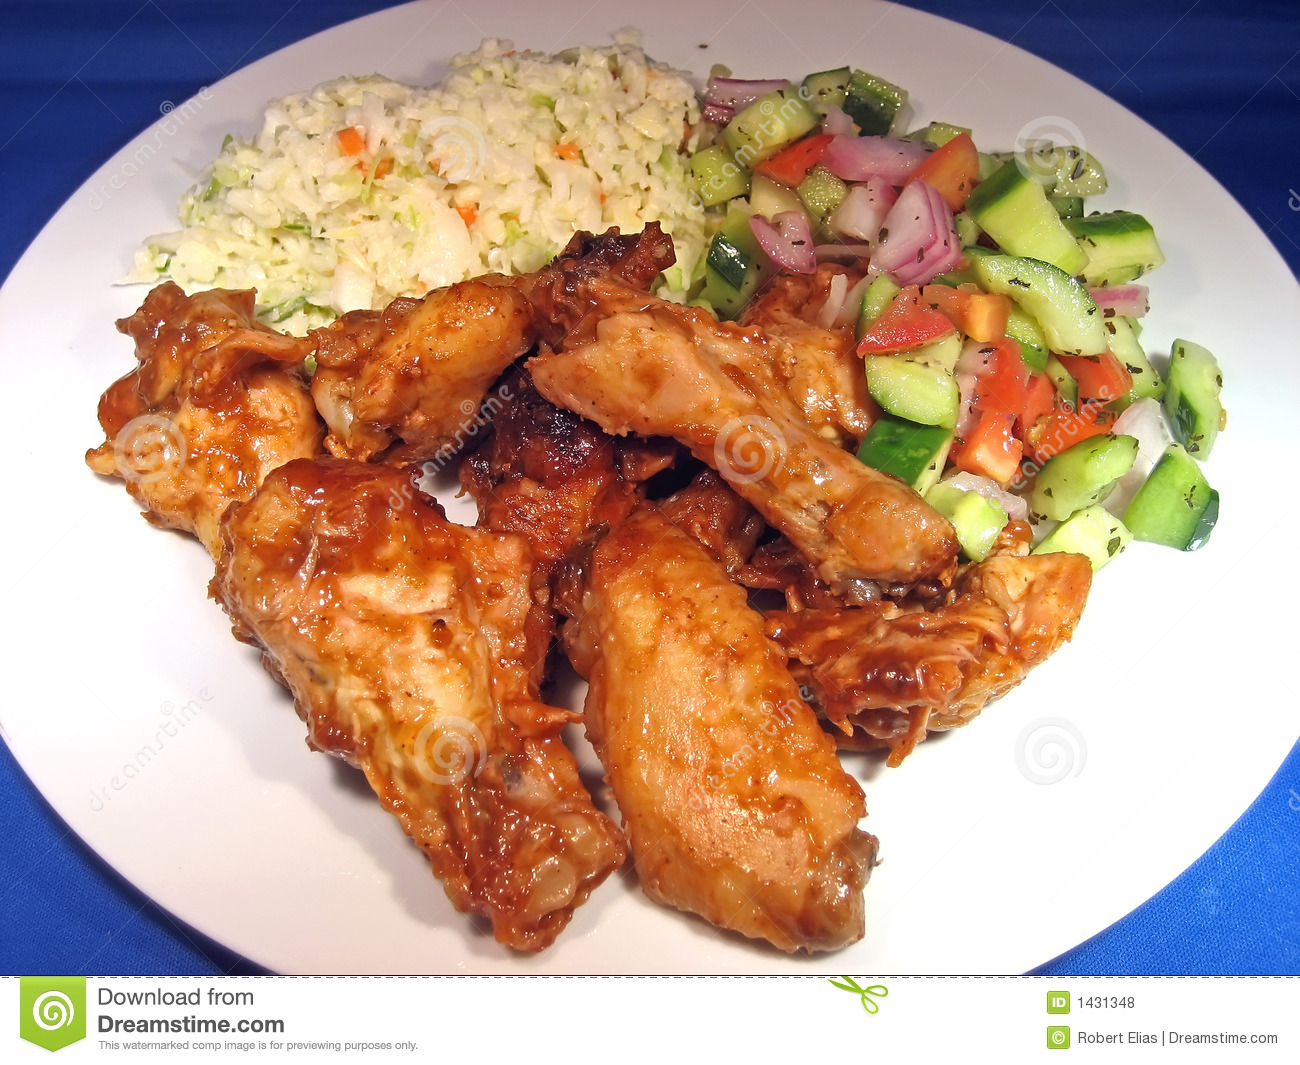 Wings and sides royalty free stock photos image 1431348 for What sides go with barbecue chicken